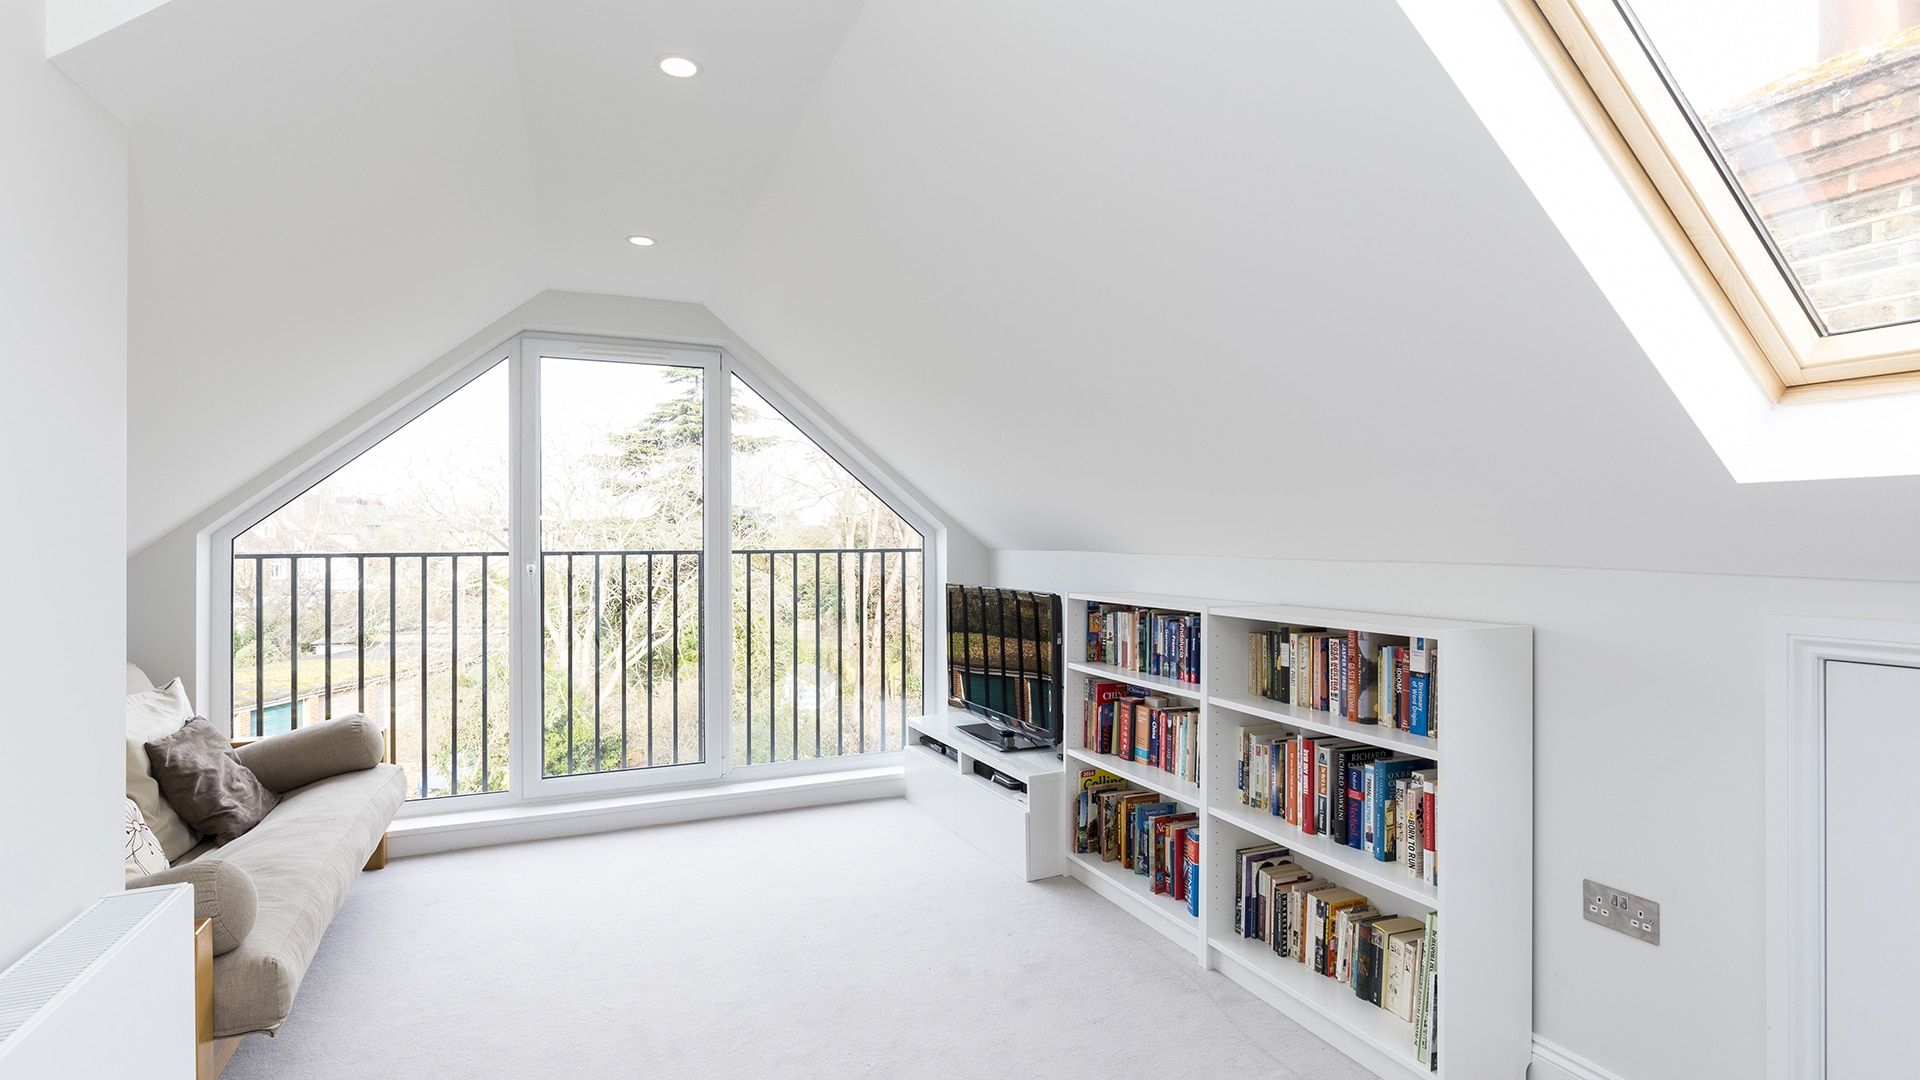 Loft Conversions – Add Extra Space to Your Home in the Most Cost Effective Way